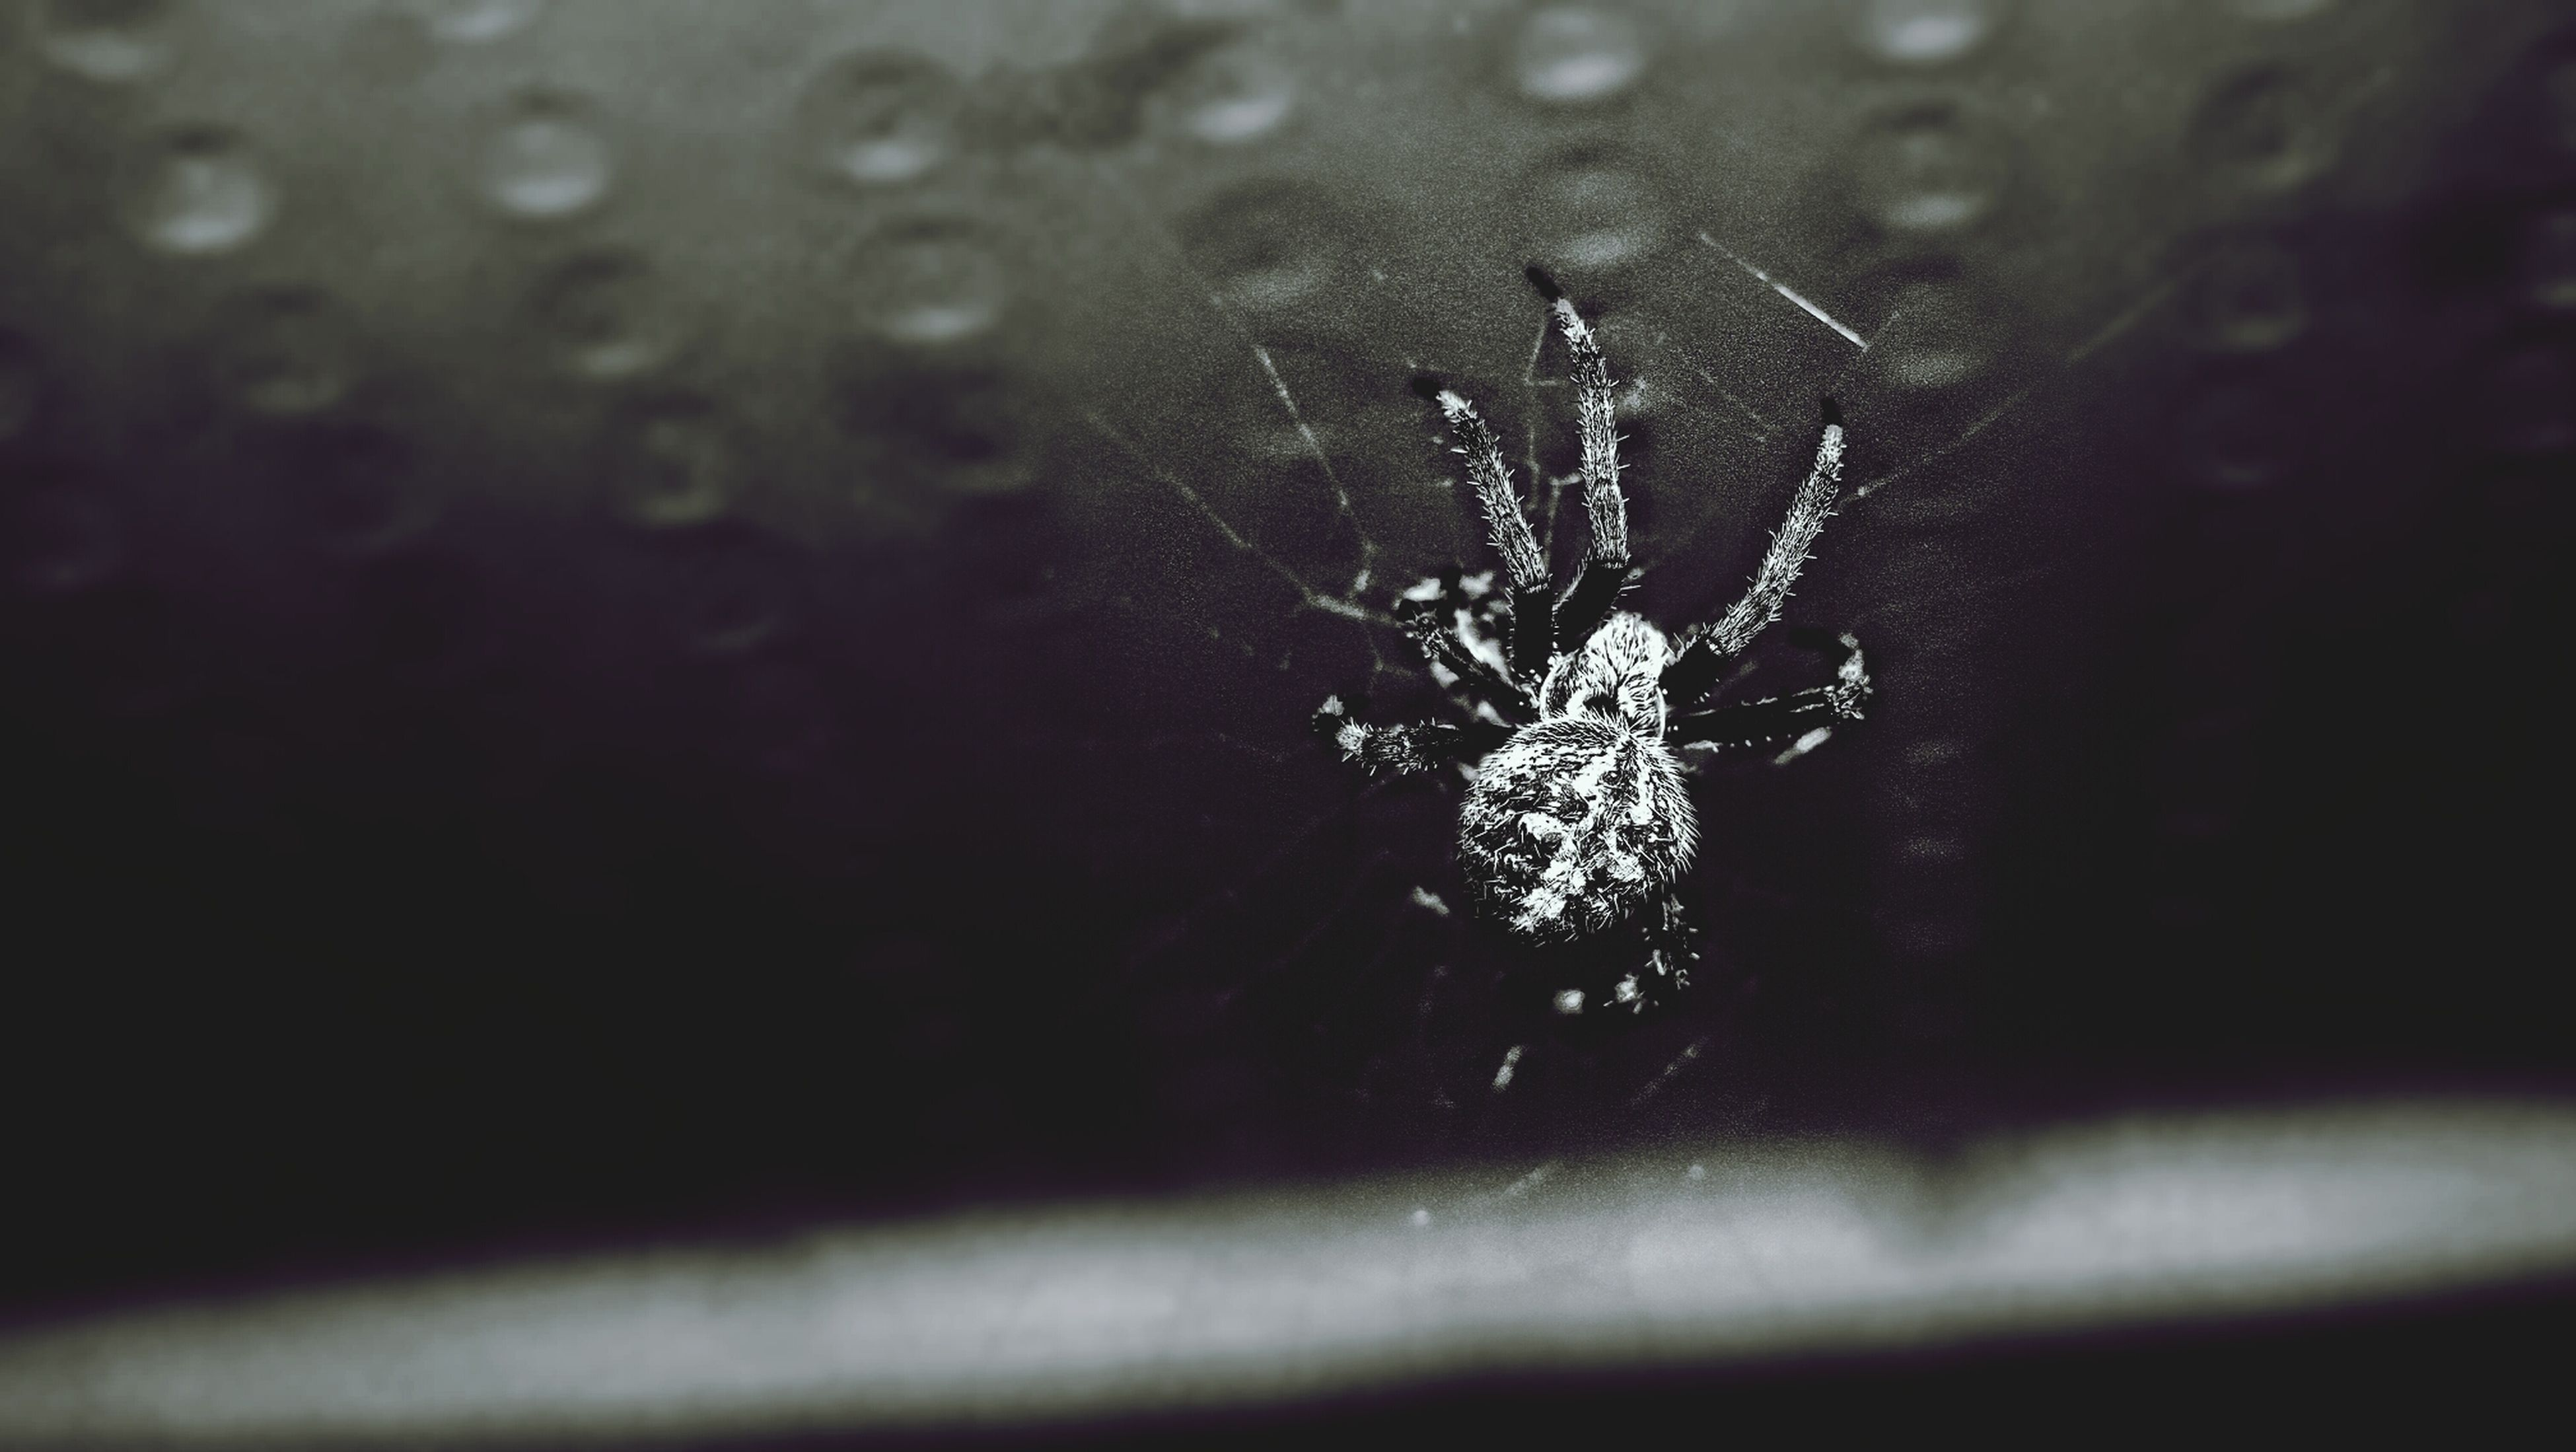 insect, one animal, animal themes, spider web, spider, animals in the wild, wildlife, close-up, focus on foreground, fragility, nature, selective focus, day, outdoors, drop, no people, arthropod, plant, beauty in nature